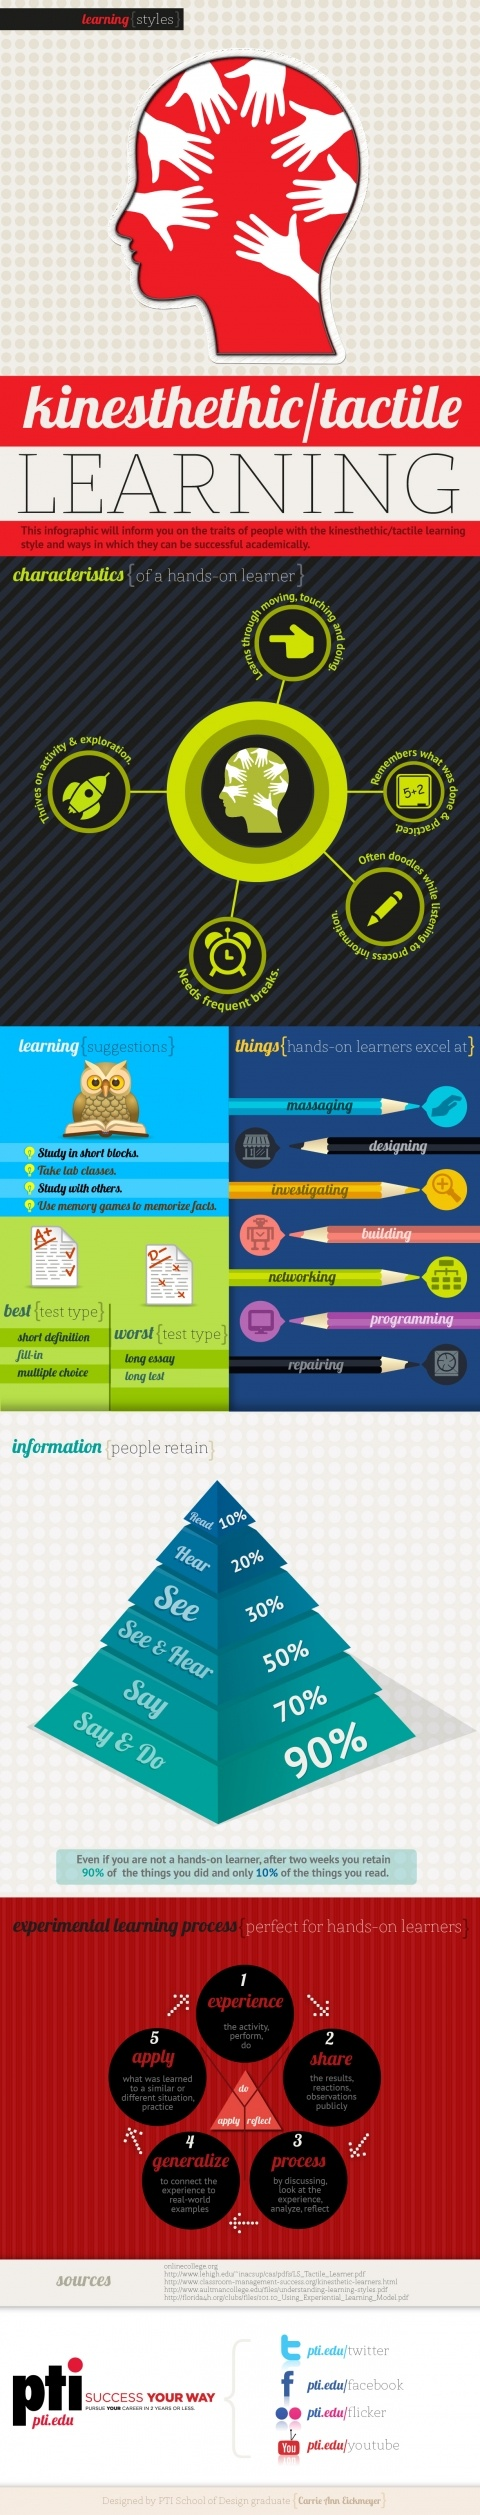 Kinesthetic-Tactile-Learning-Styles-Infographic_1